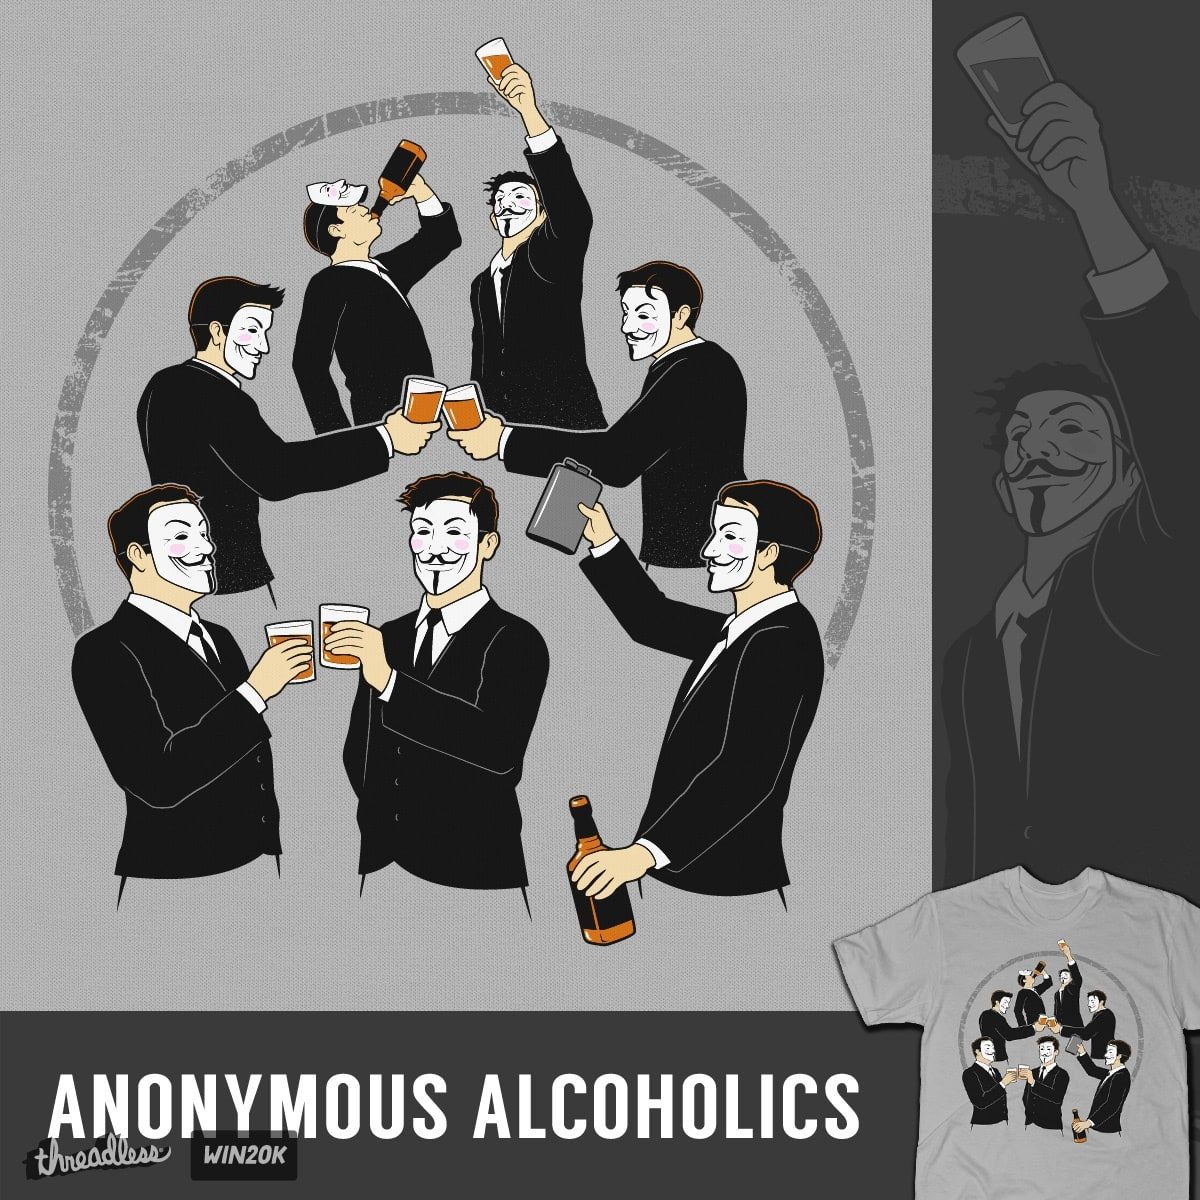 Anonymous Alcoholics by tomburns on Threadless